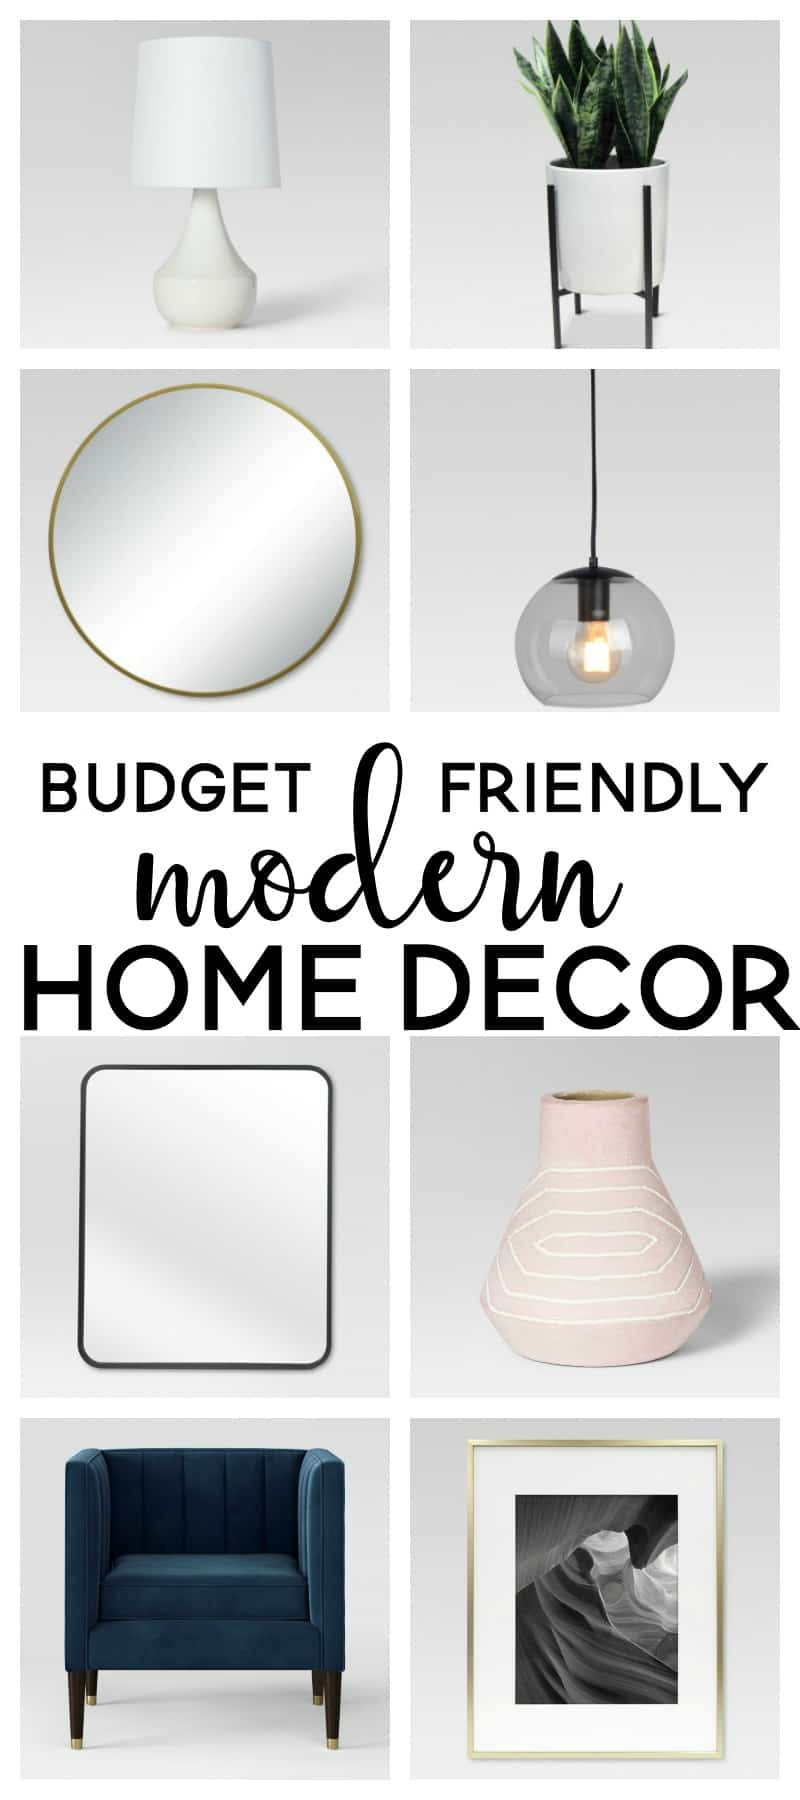 My Favorite Modern Home Decor from Target